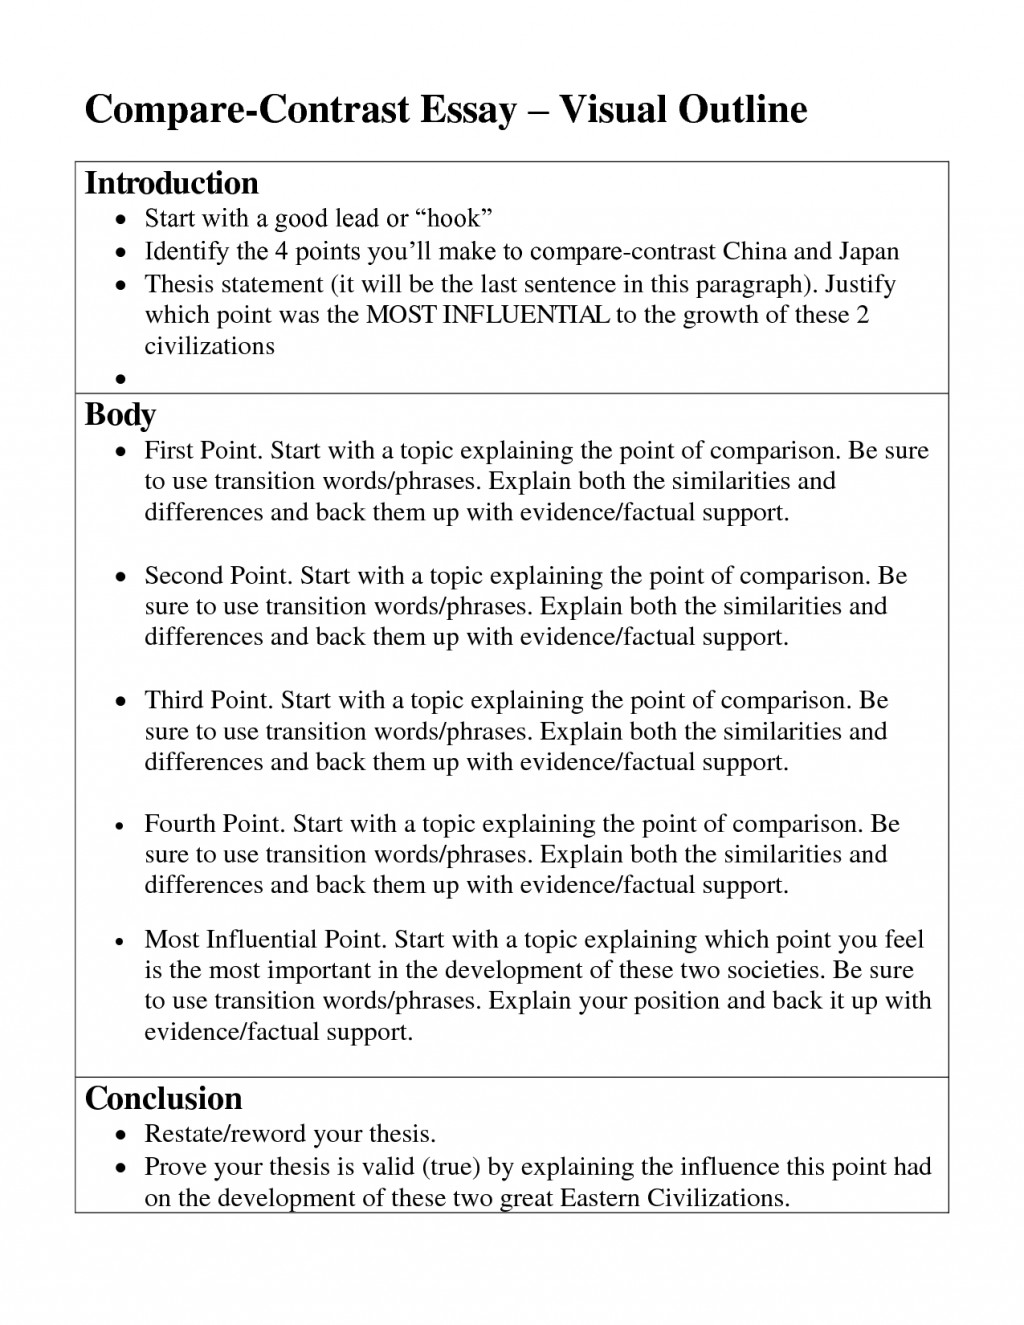 005 How To Write Compare And Contrast Essay Outstanding A Outline Comparison Ppt Middle School Large